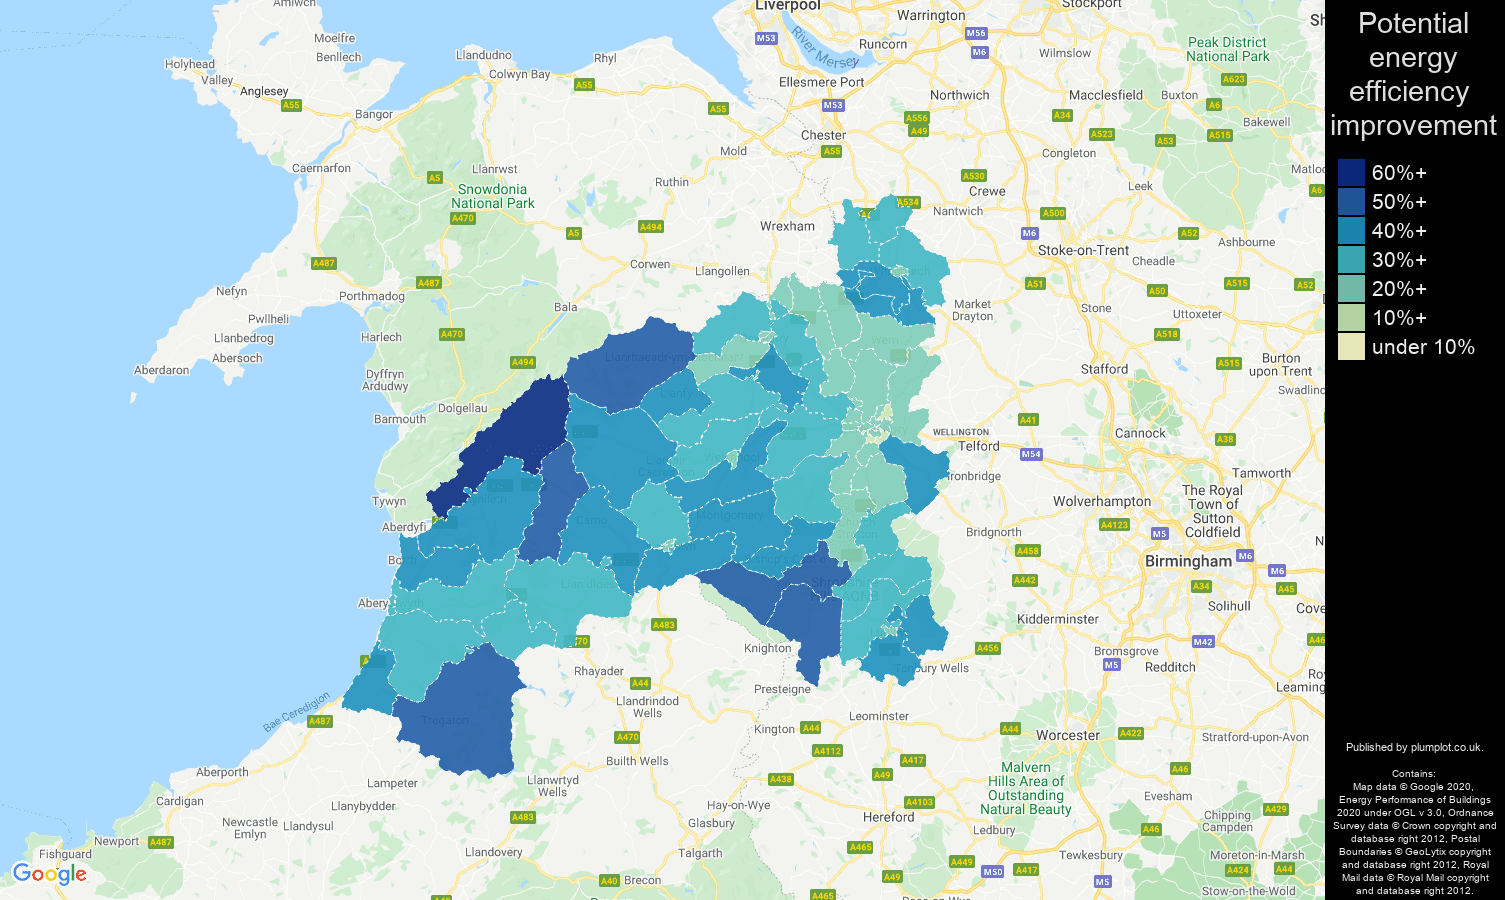 Shrewsbury map of potential energy efficiency improvement of houses